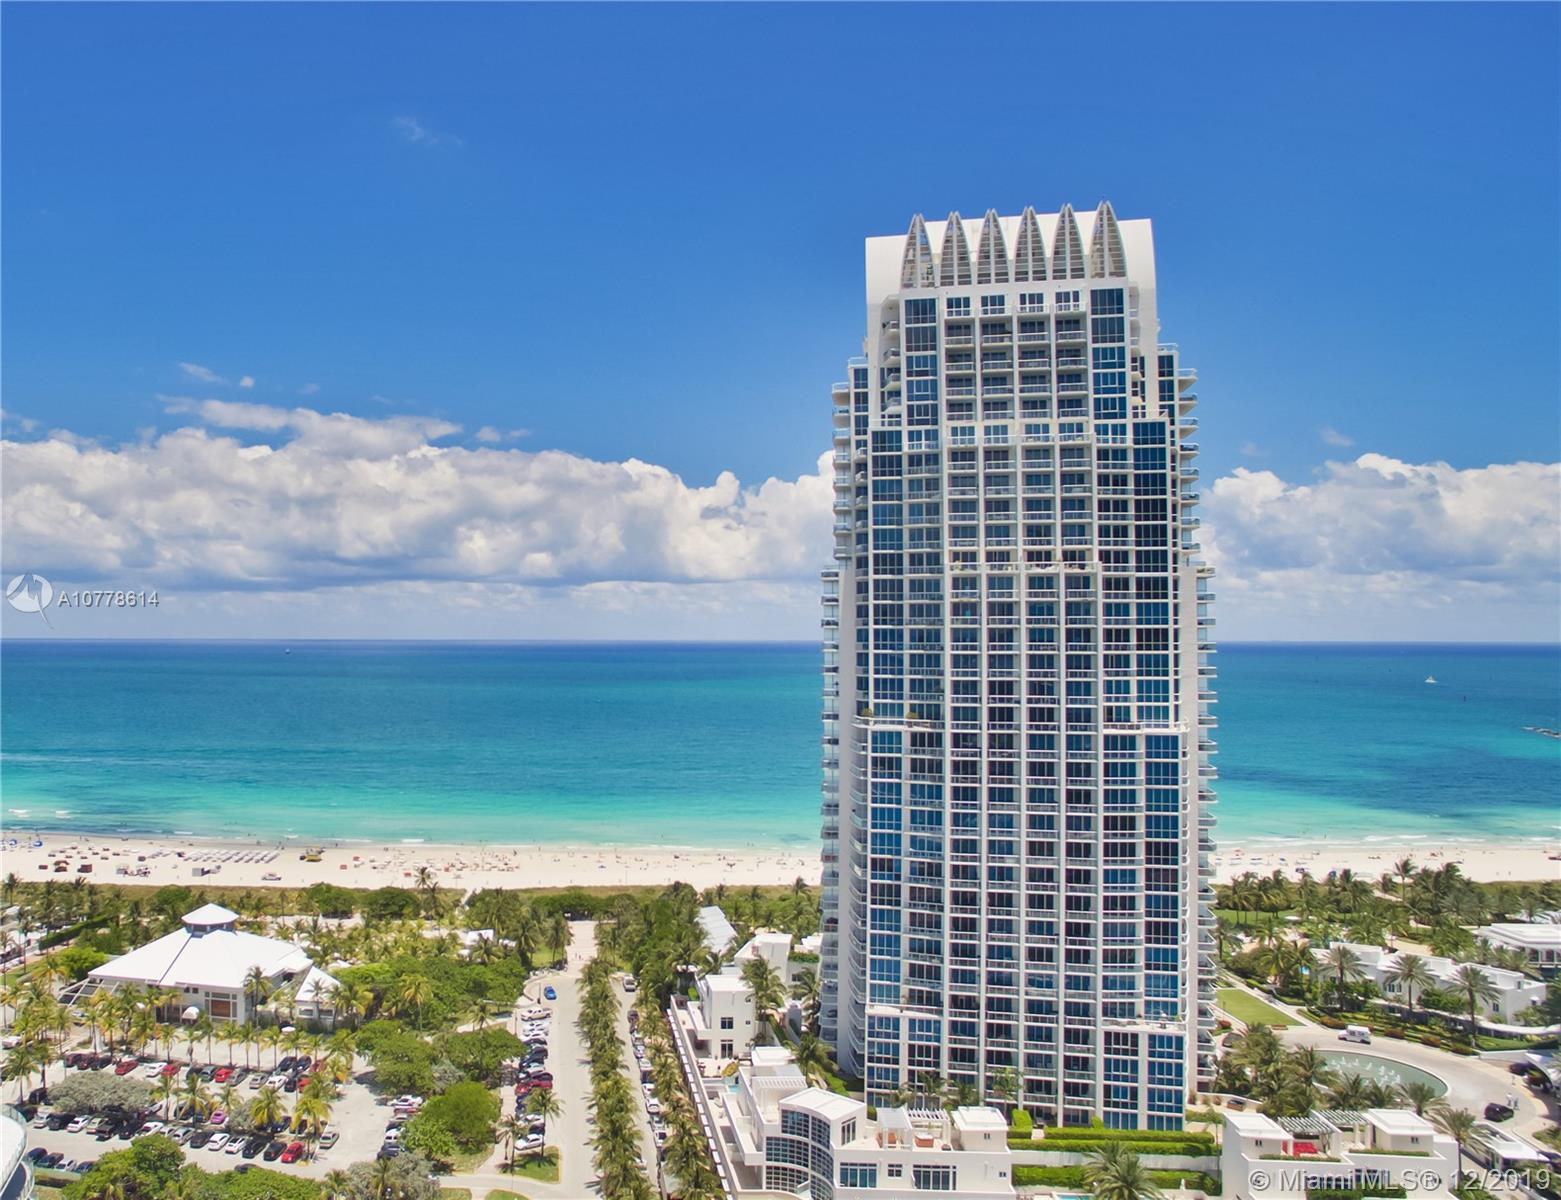 50 S Pointe Dr #2505 For Sale A10778614, FL